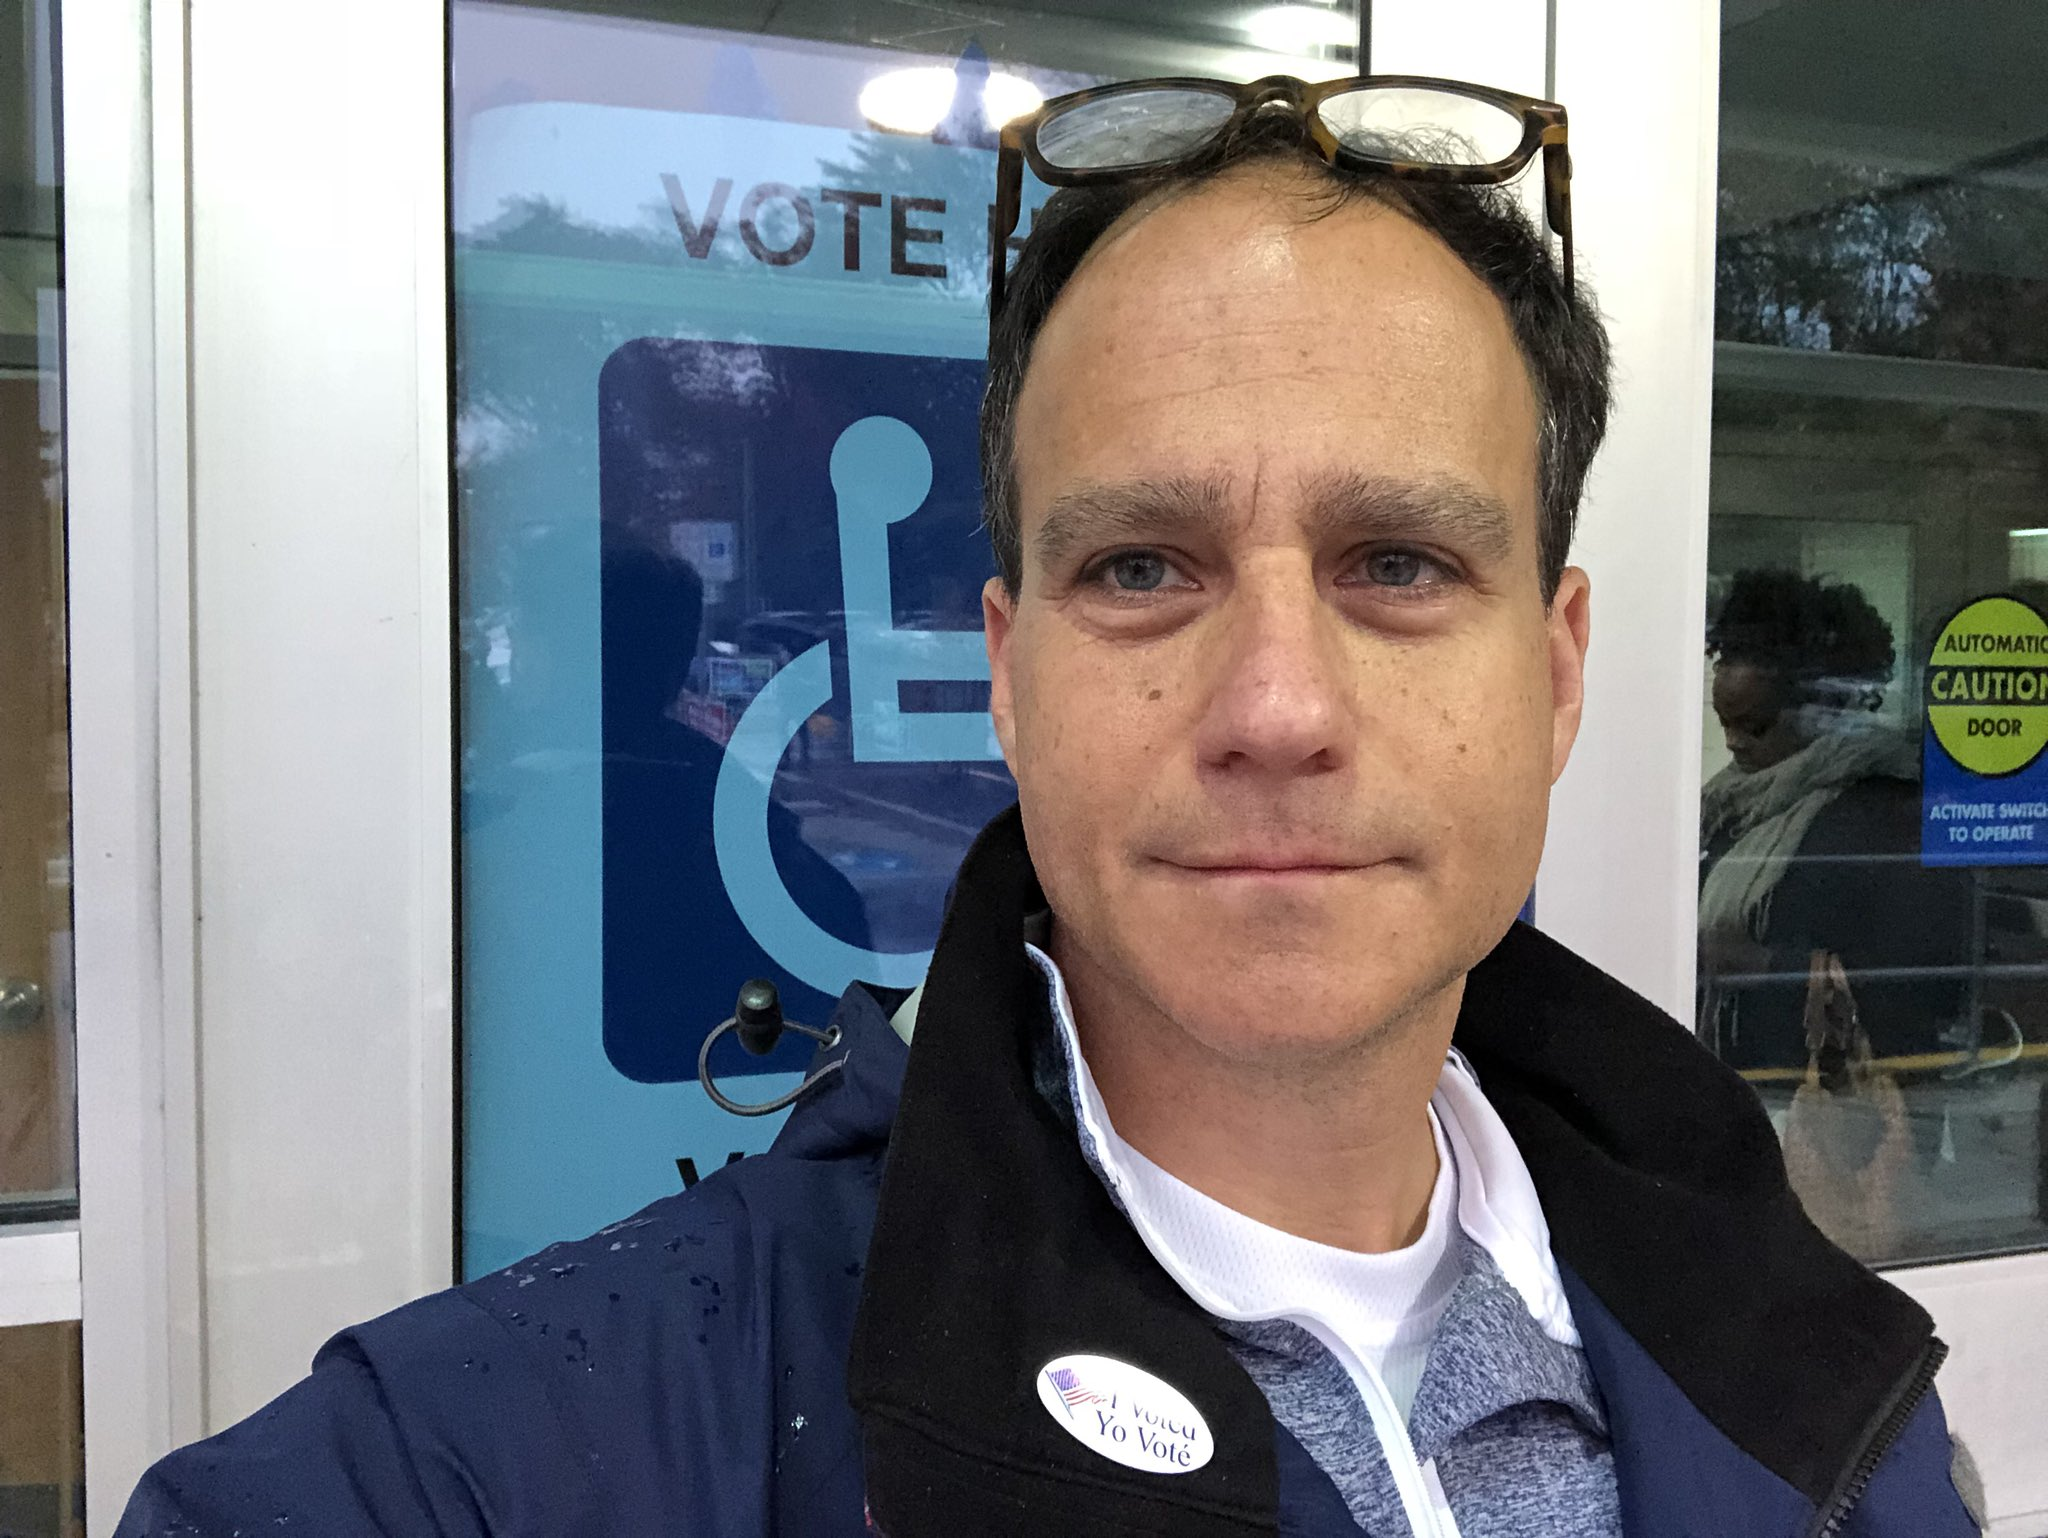 Rabbi Jonah Pesner takes a selfie outside a polling place on Election Day